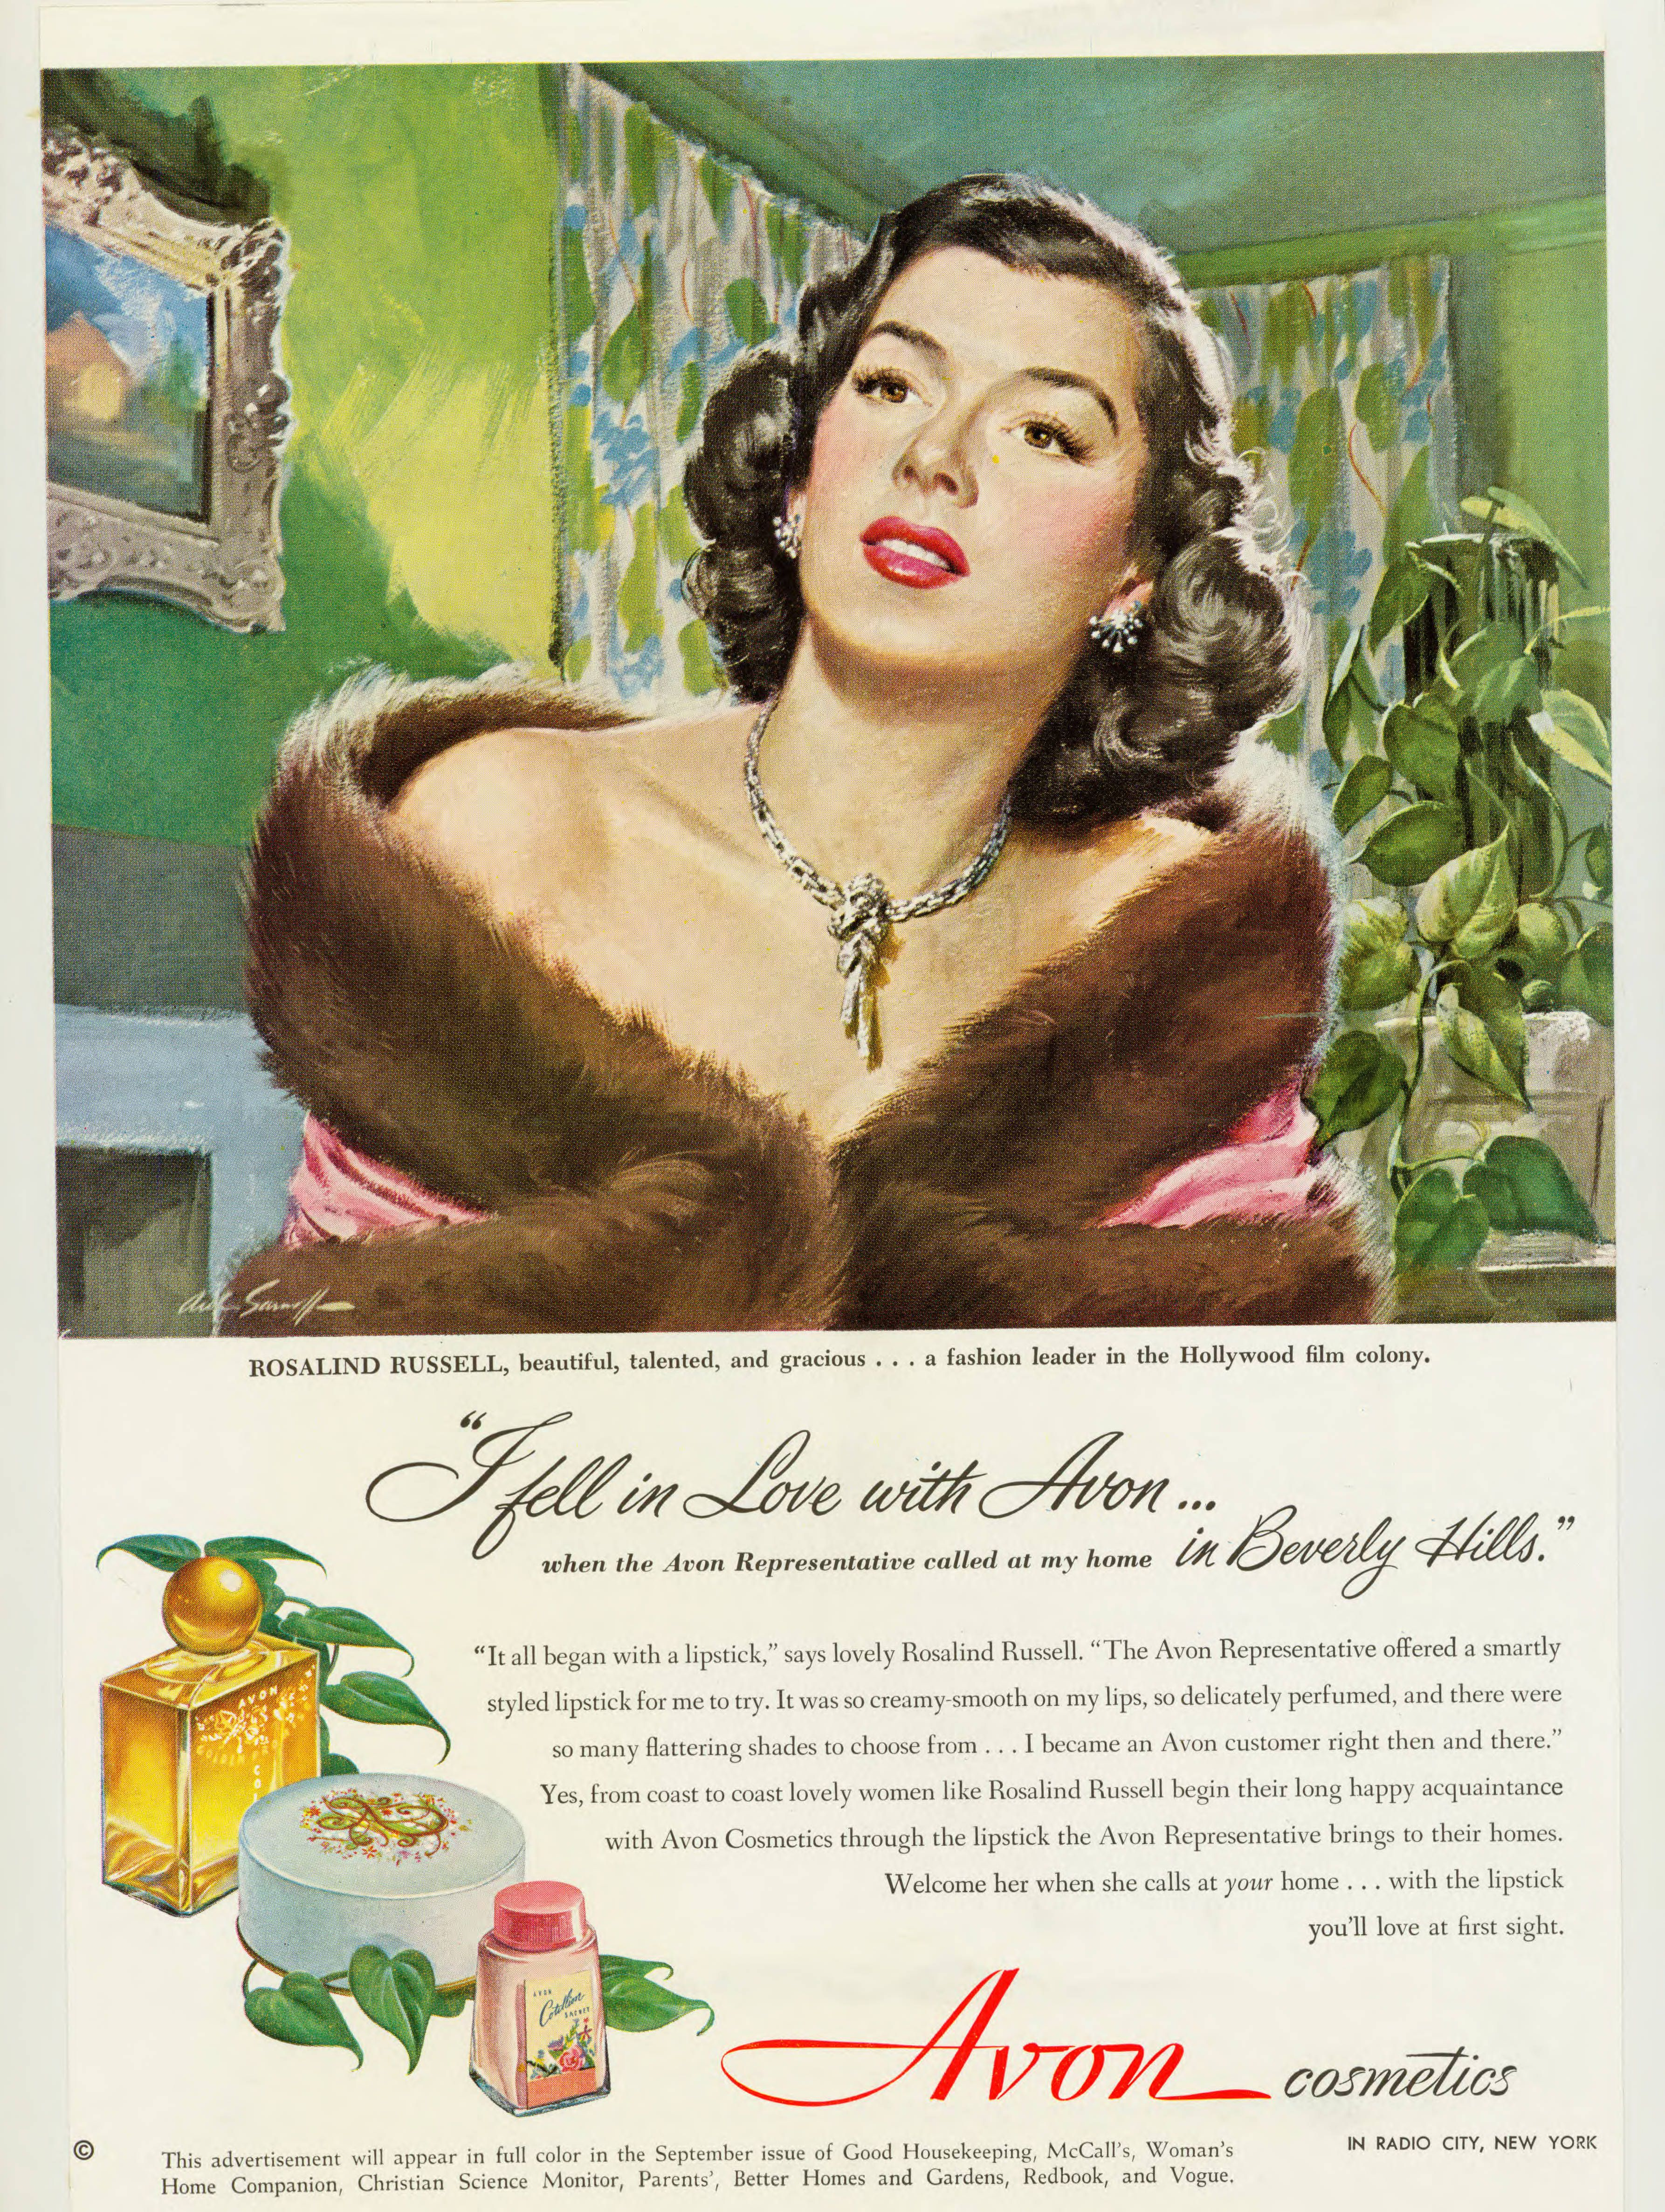 Rosalind Russell Avon ad.